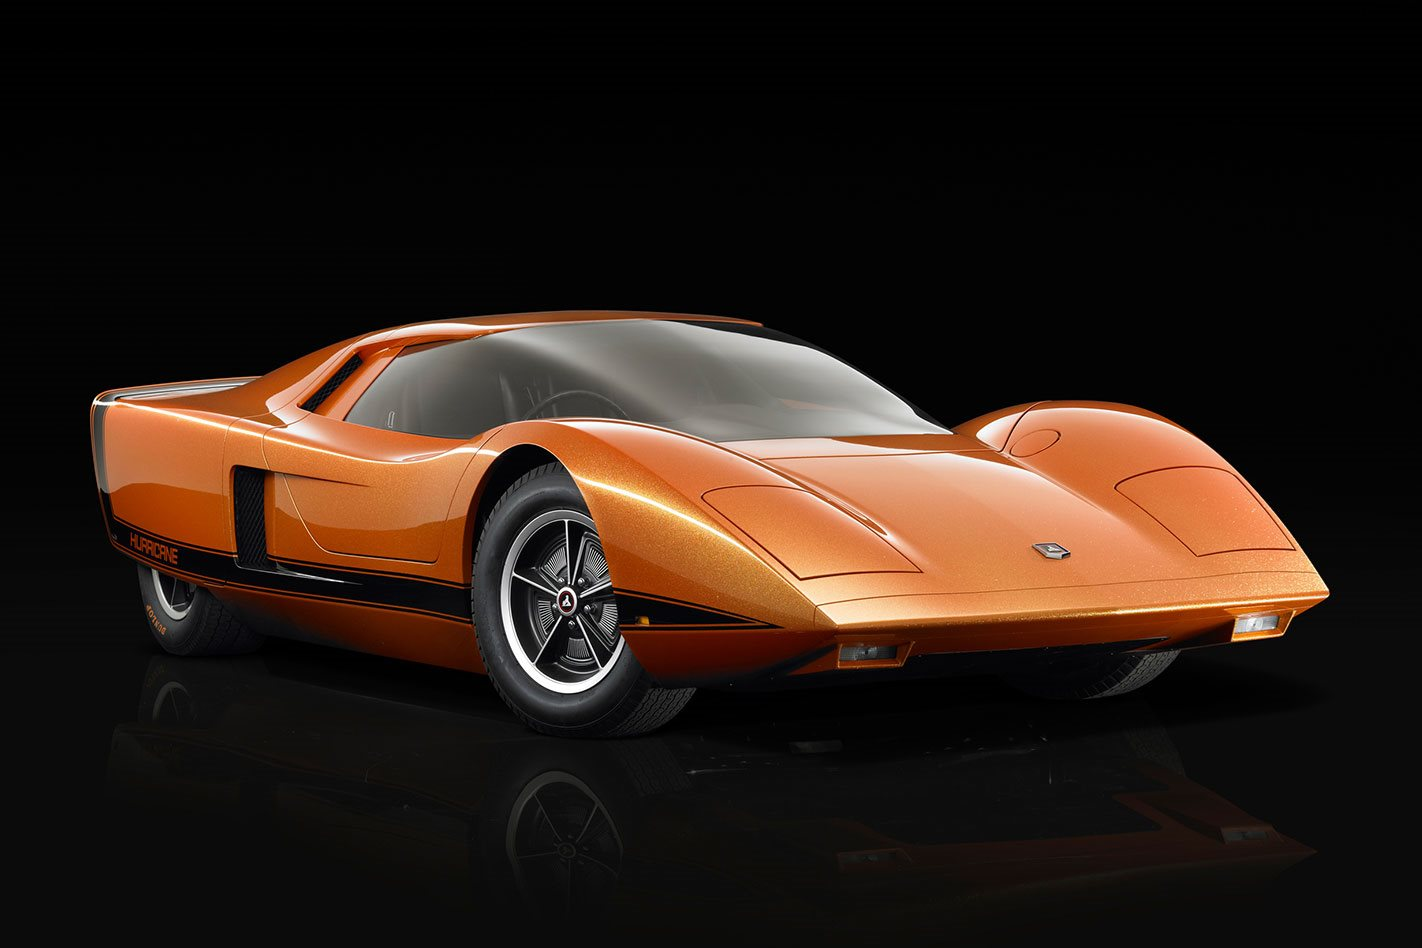 Australia's first super car is still ahead of its time